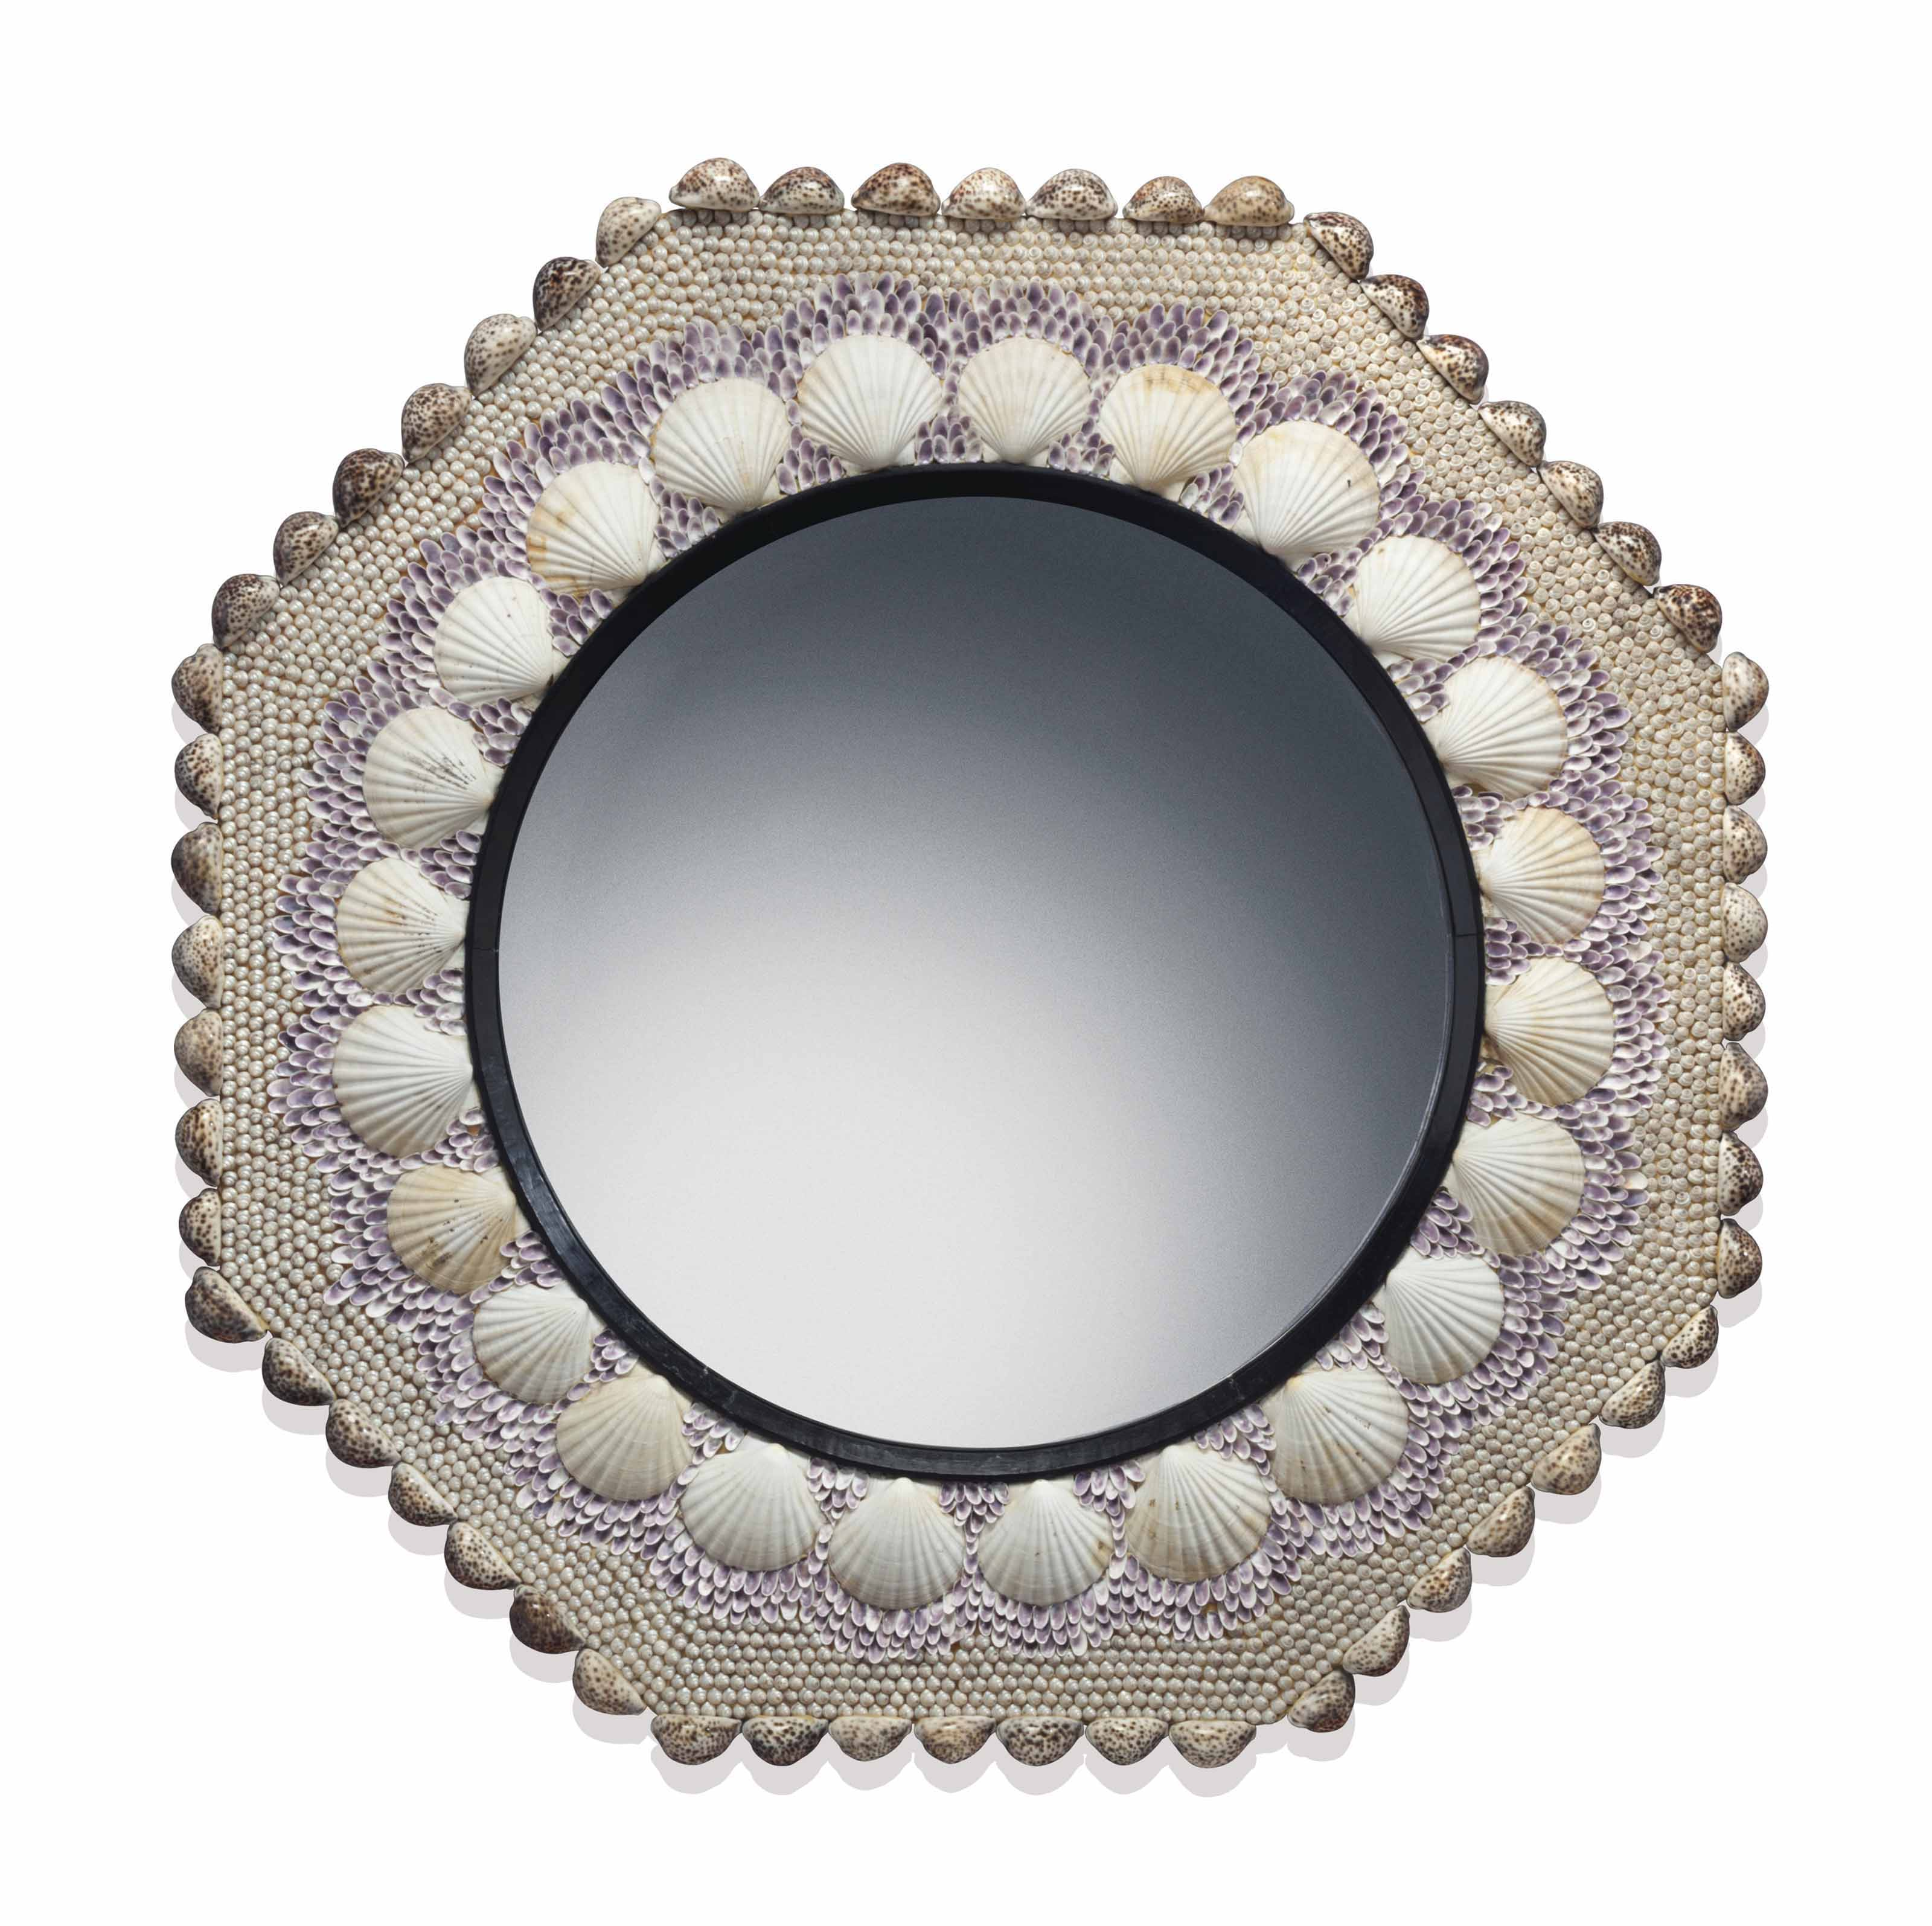 A SHELL ENCRUSTED OCTAGONAL CONVEX MIRROR